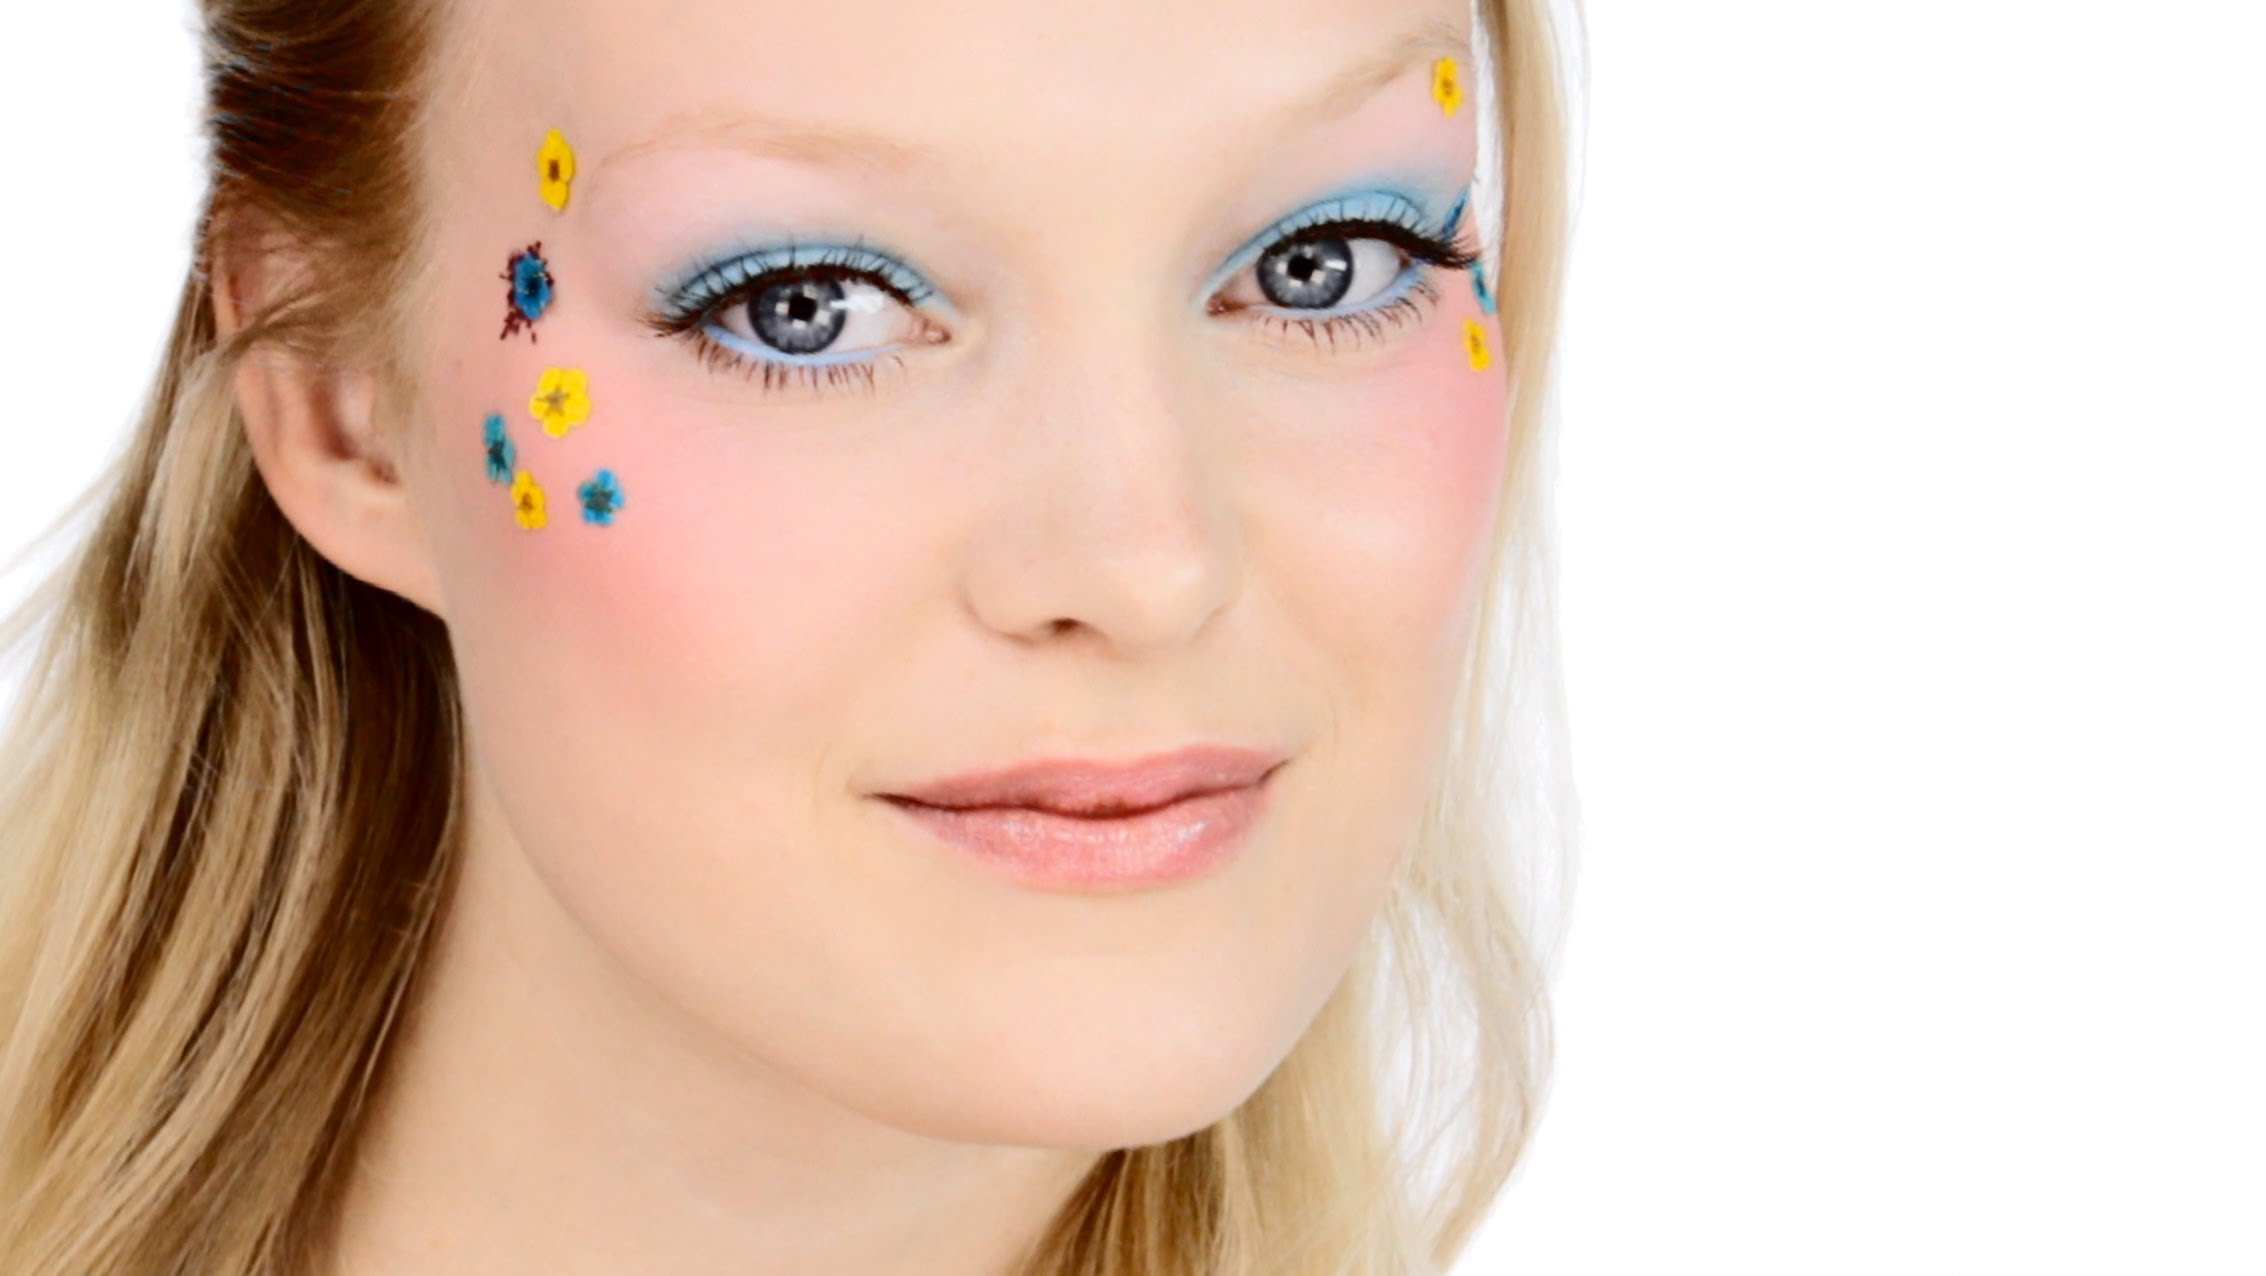 Pretty 'Flower Child' Makeup Look